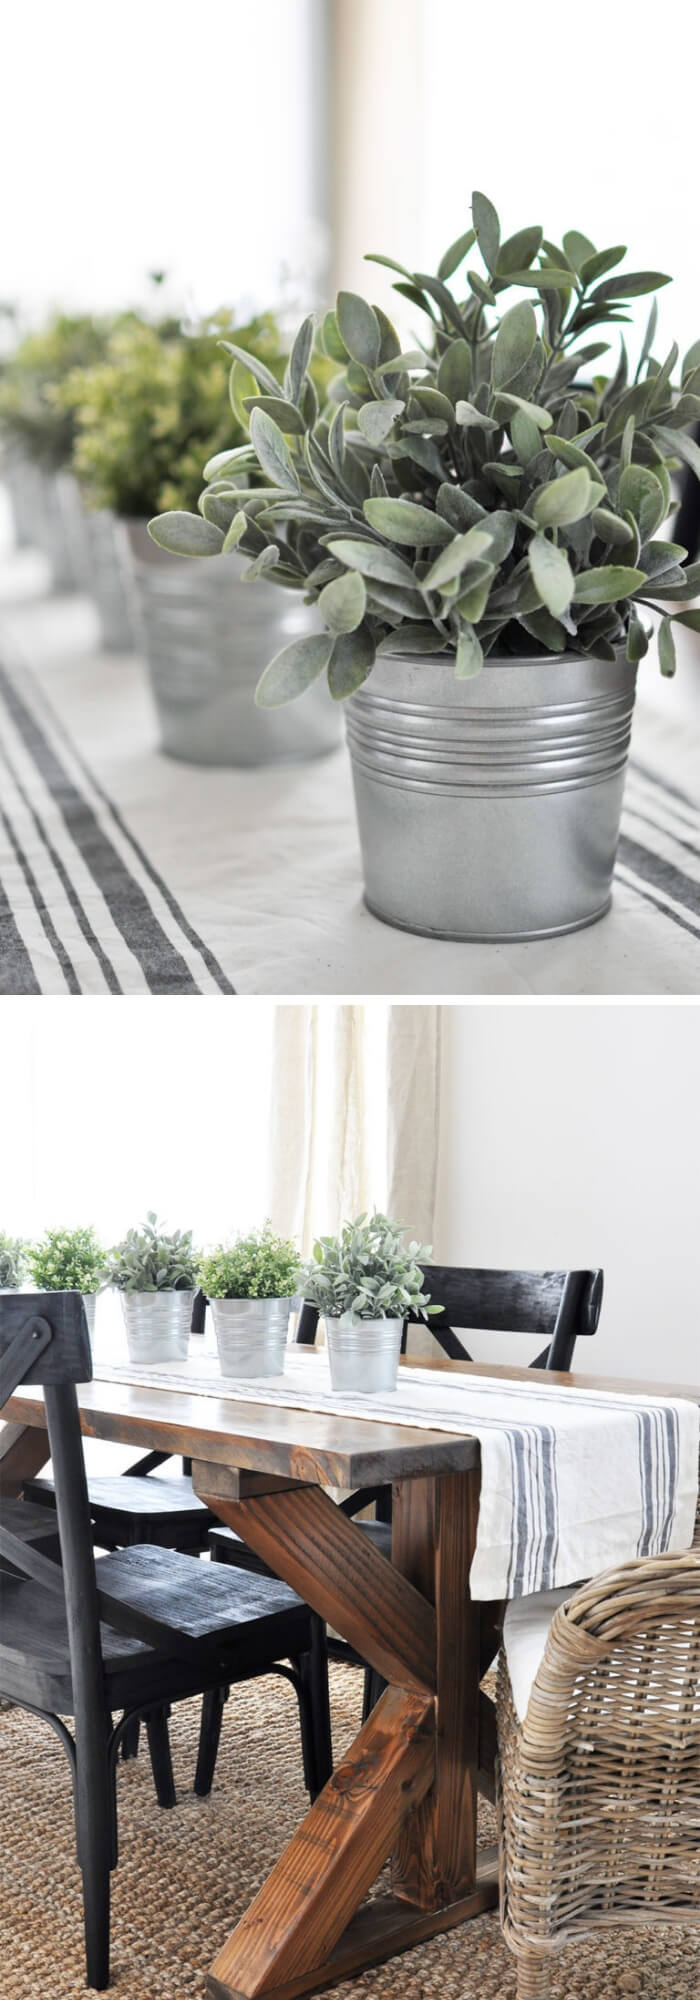 Herbs in Galvanized buckets | Best Farmhouse Indoor Plant Decor Ideas & Designs